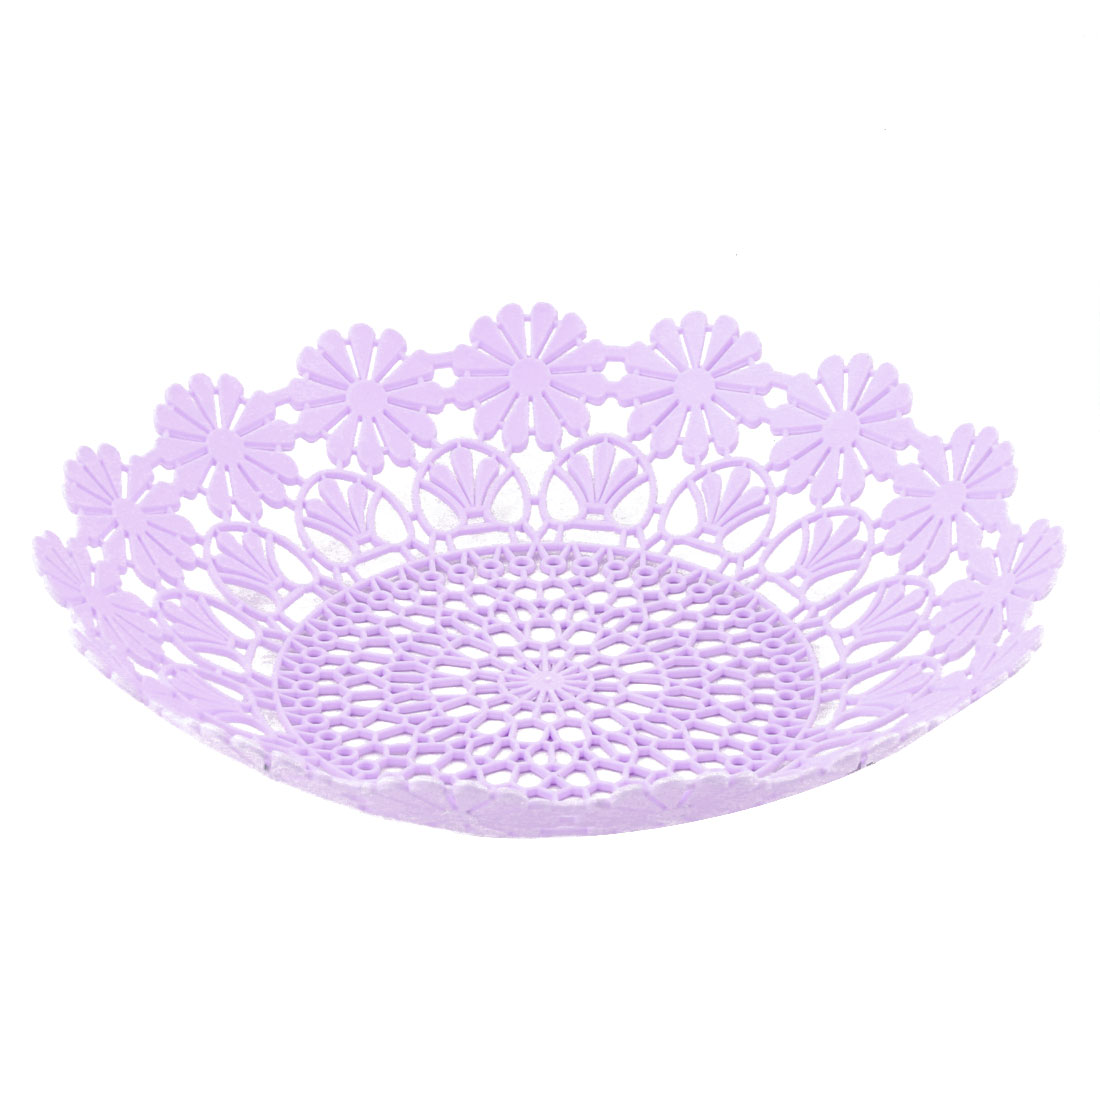 Home Plastic Hollow Out Flower Edge Design Fruit Basket Plate Tray Light Purple